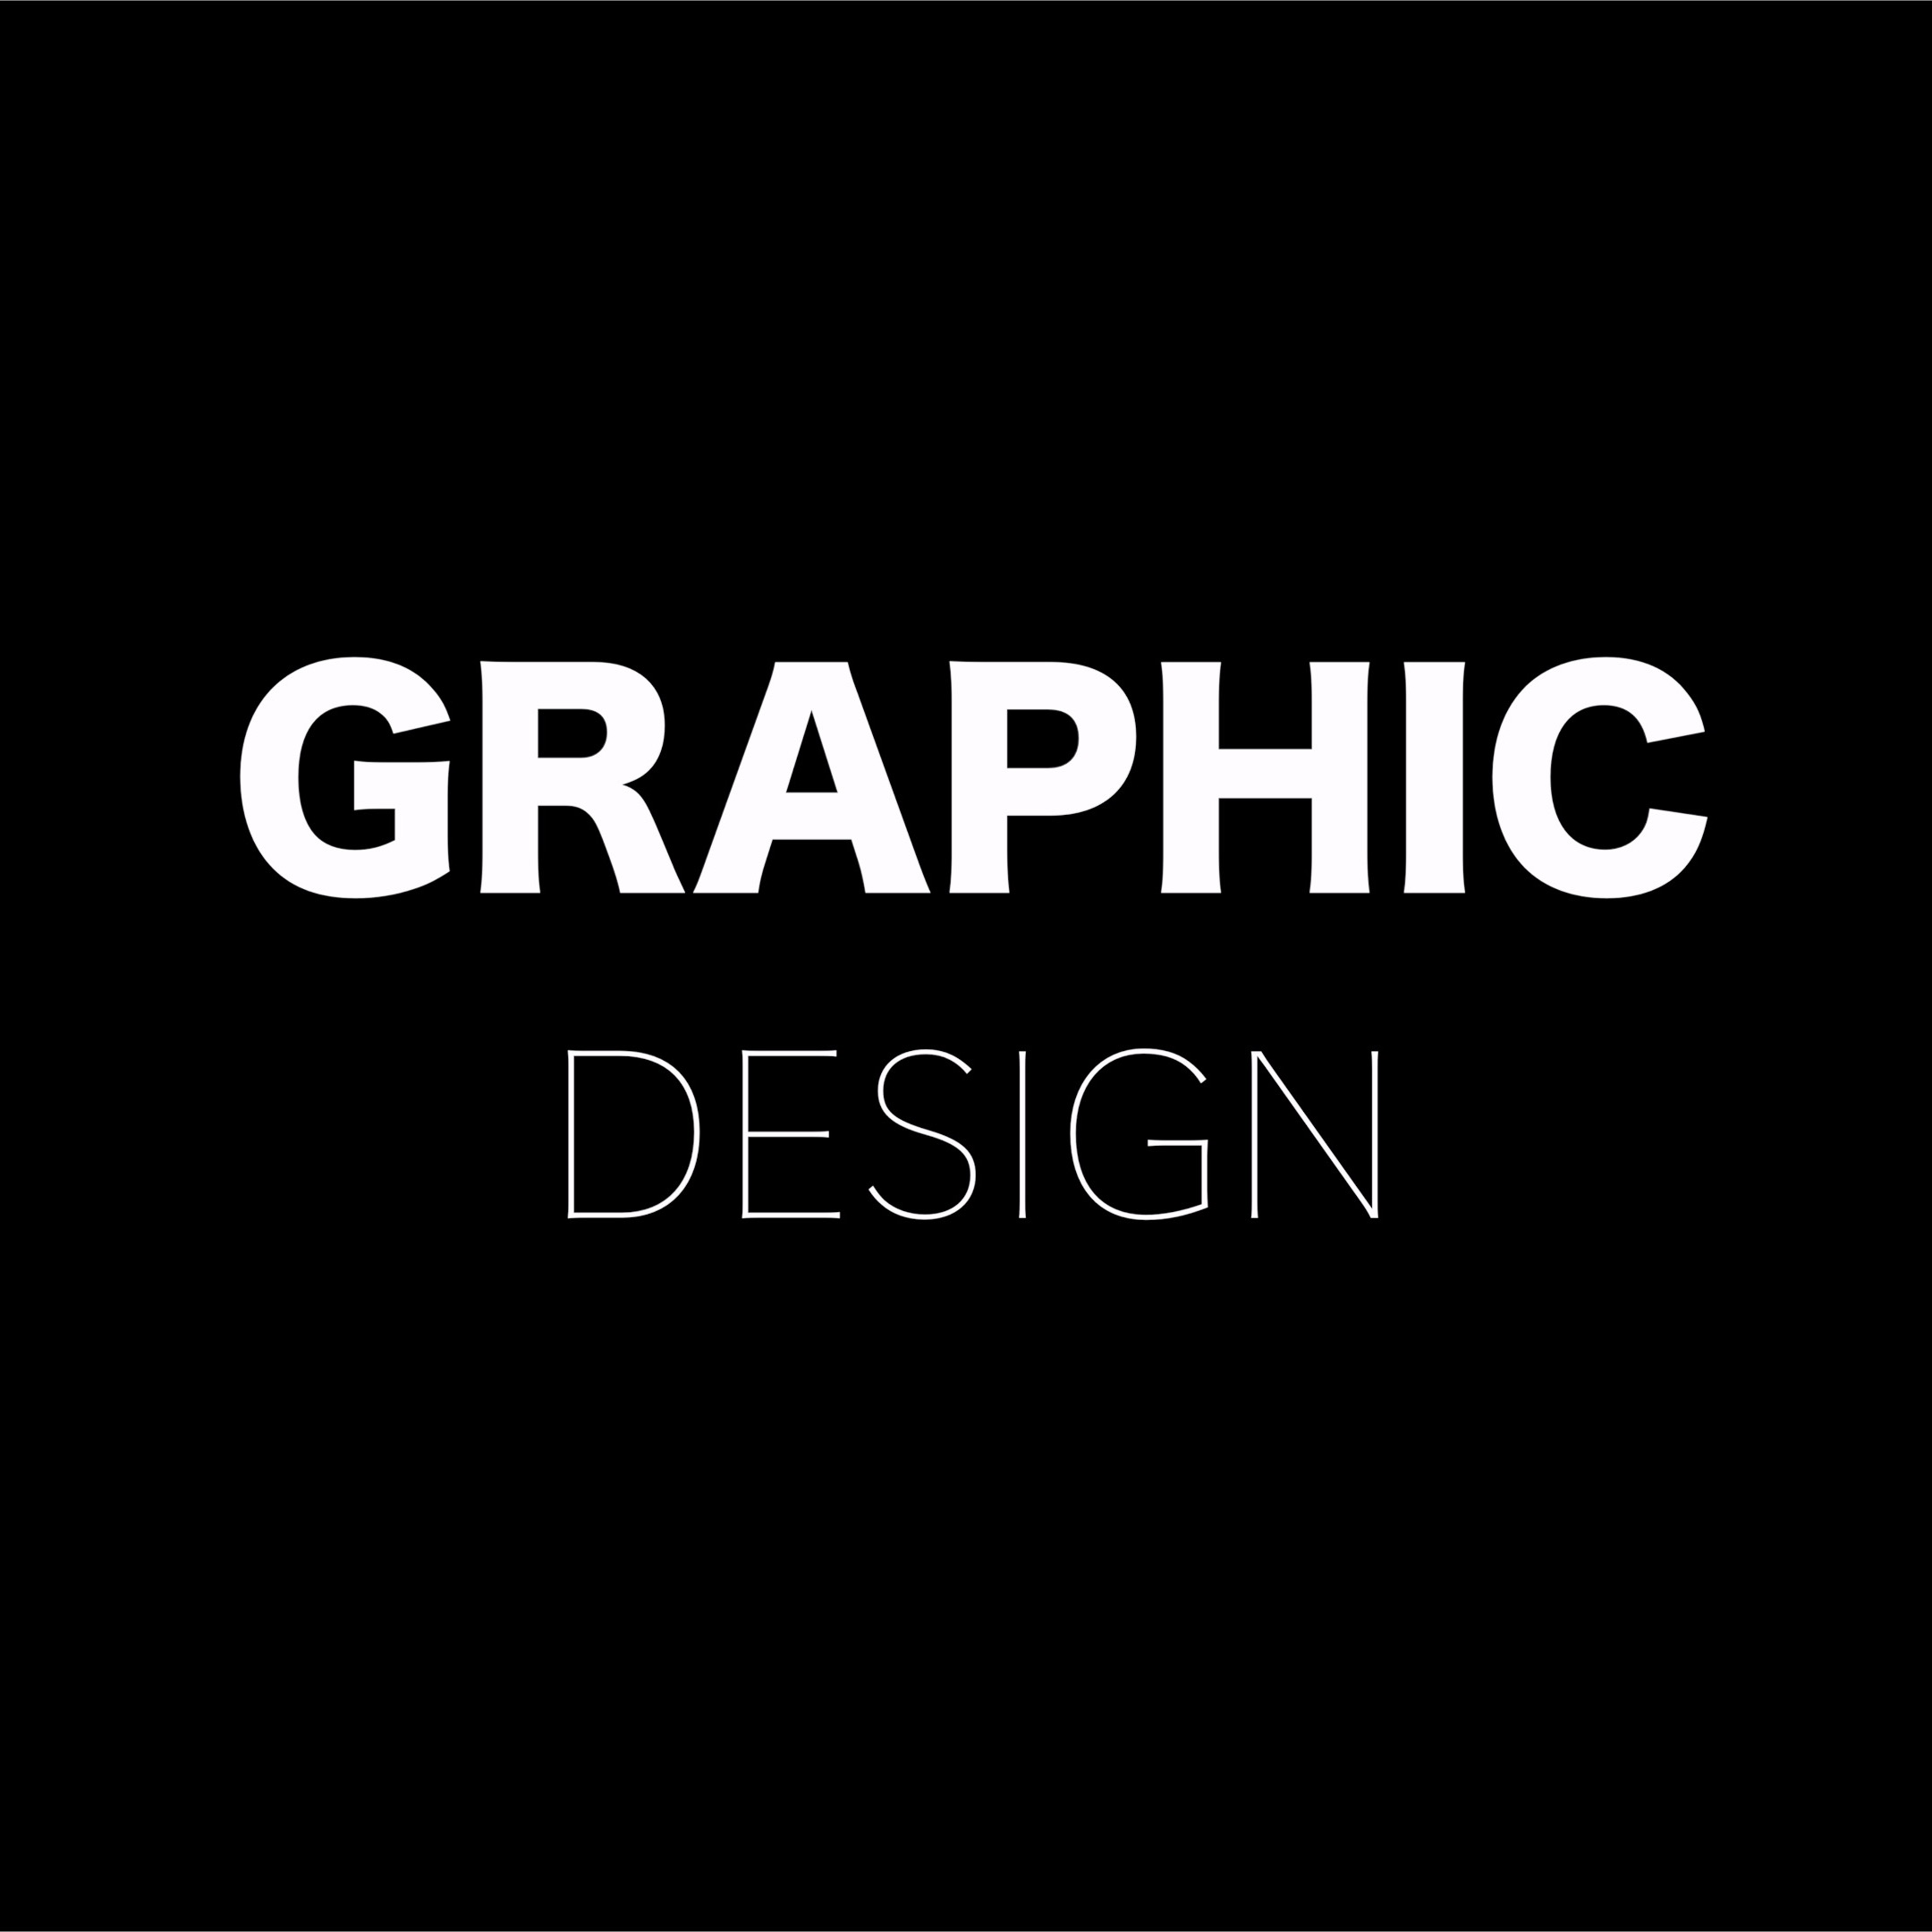 Graphic Design Square.jpg